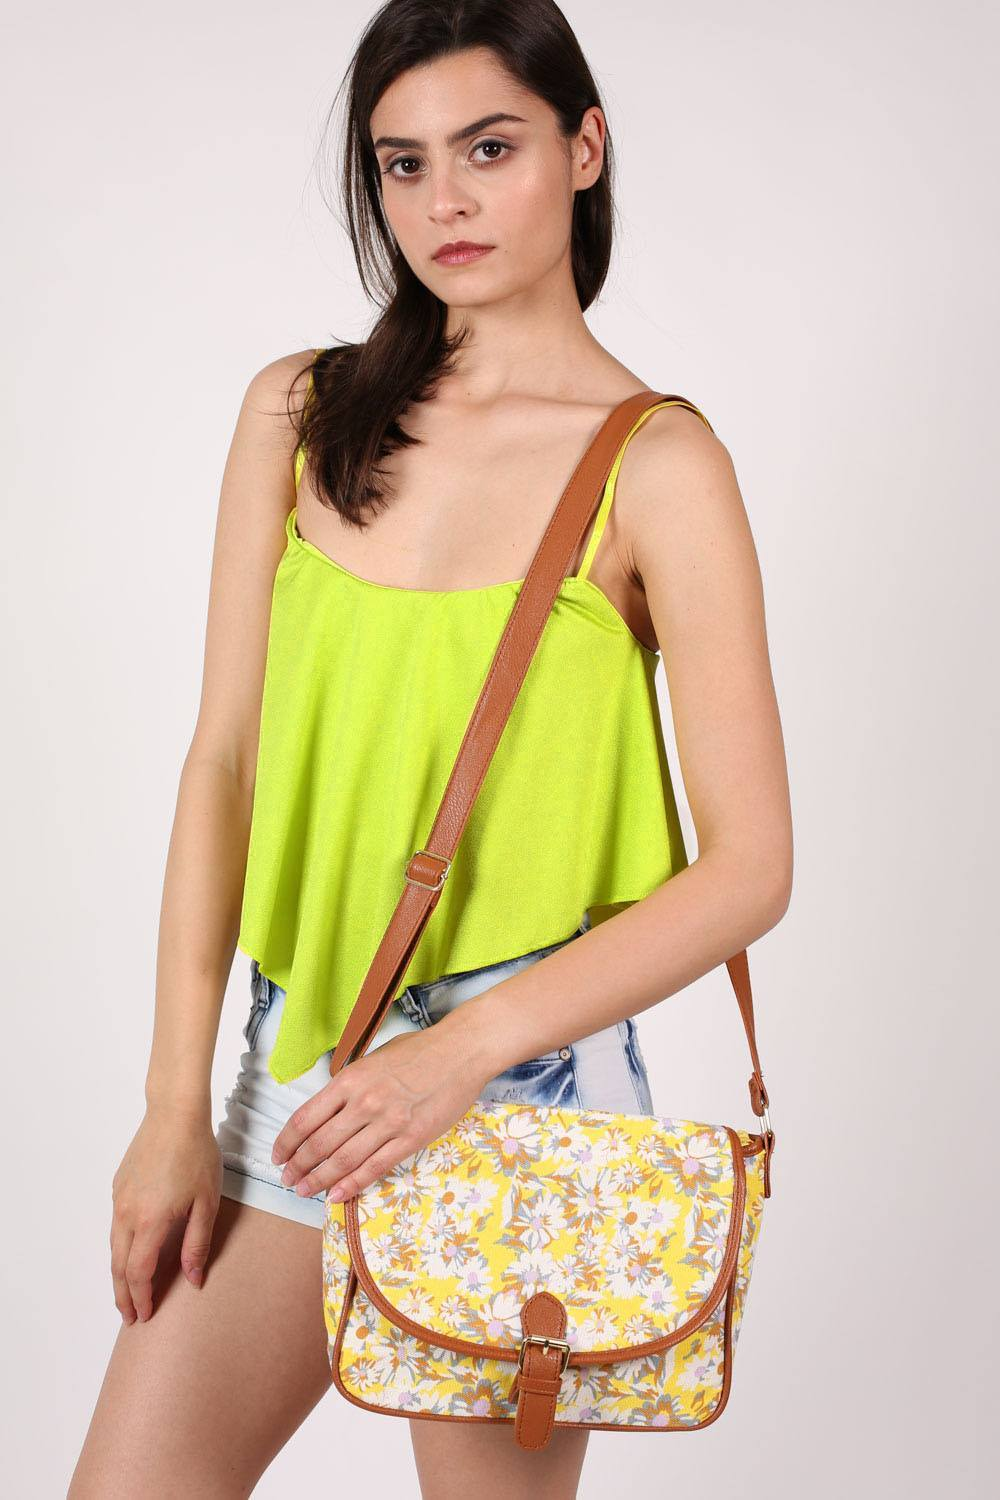 Daisy Print Satchel in Yellow MODEL FRONT